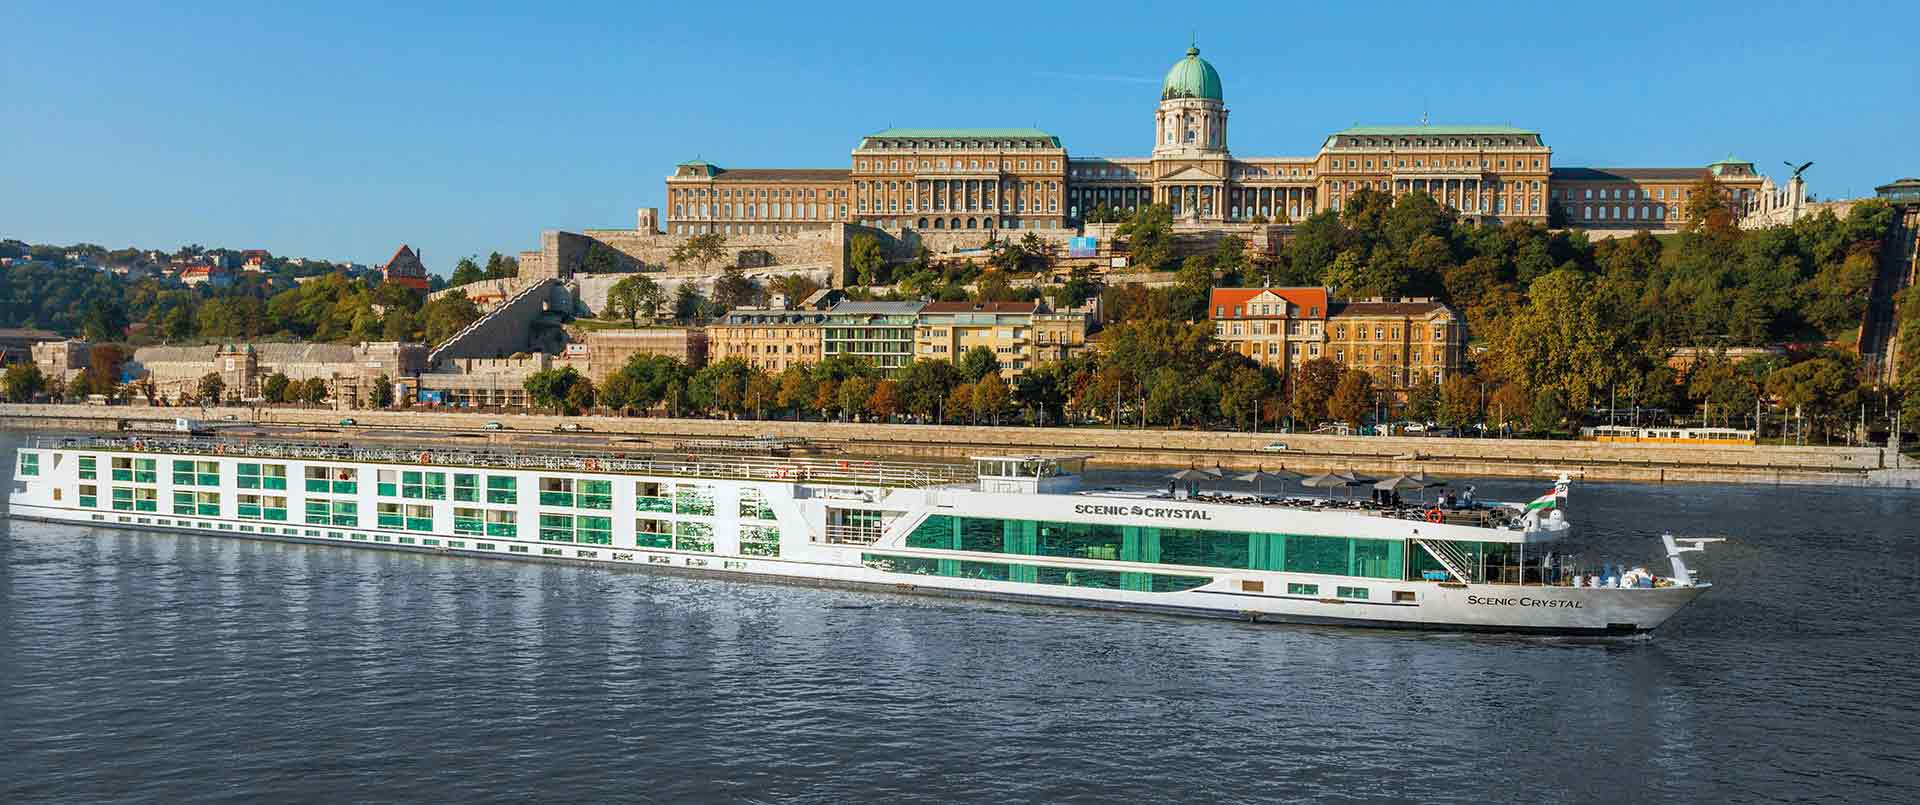 River Cruise with a Scene